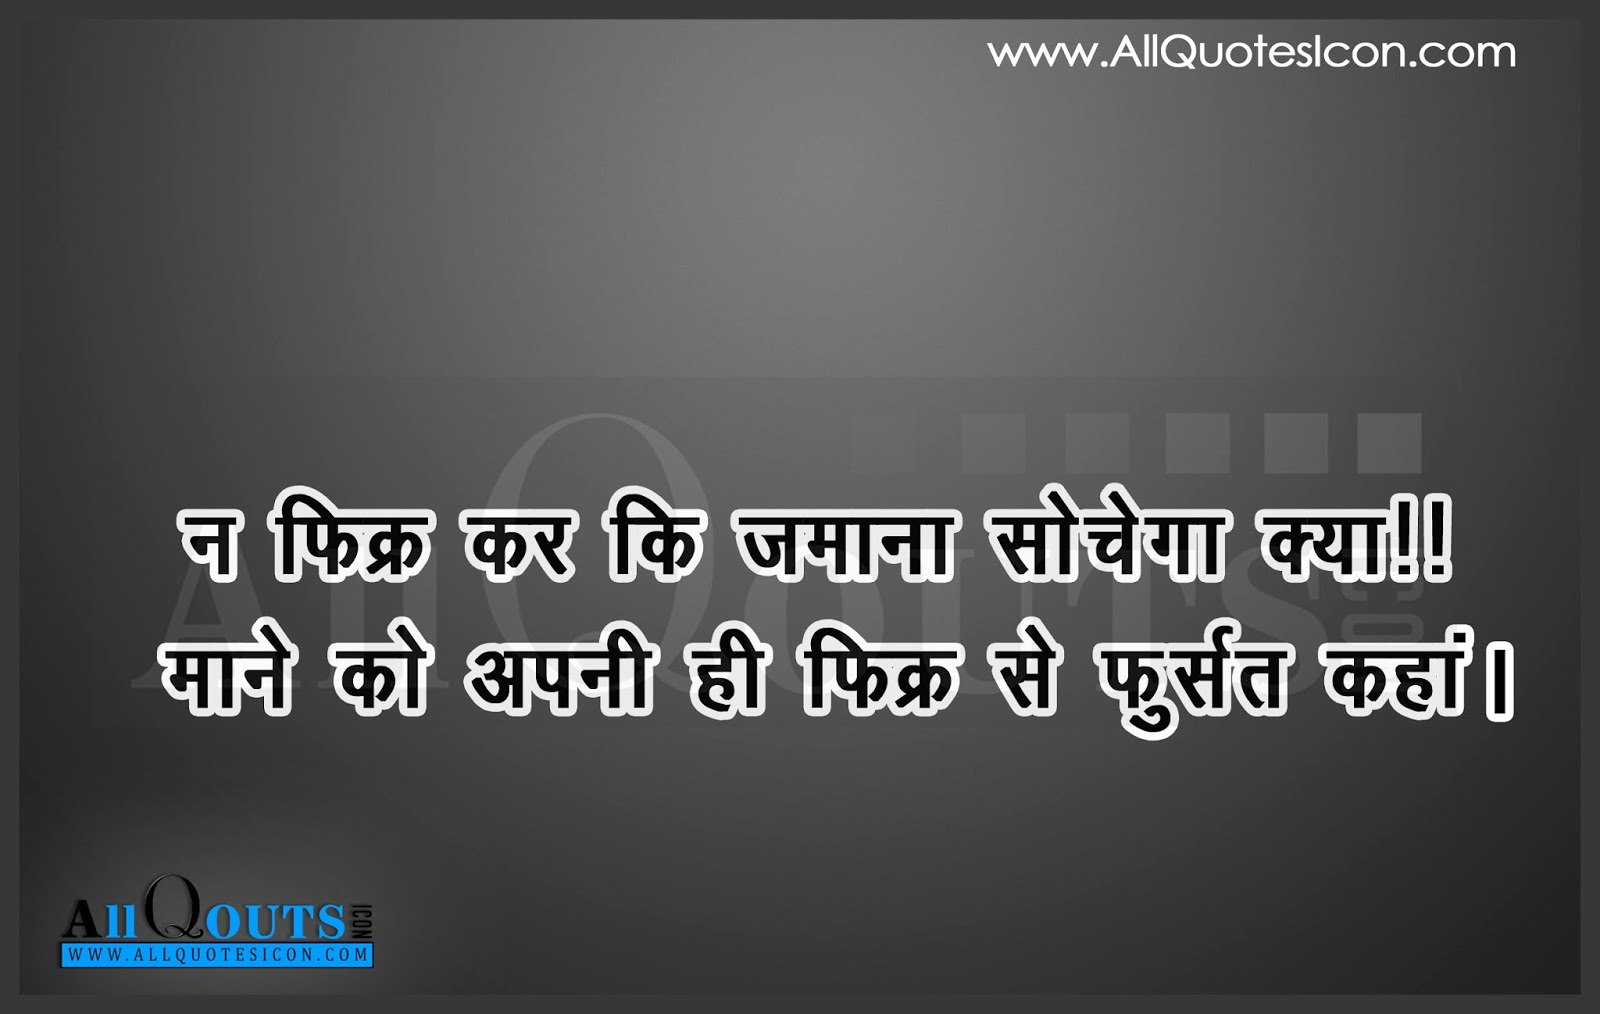 Funny Quotes About Life Funny Quotes About Life In Hindi  The Hun For